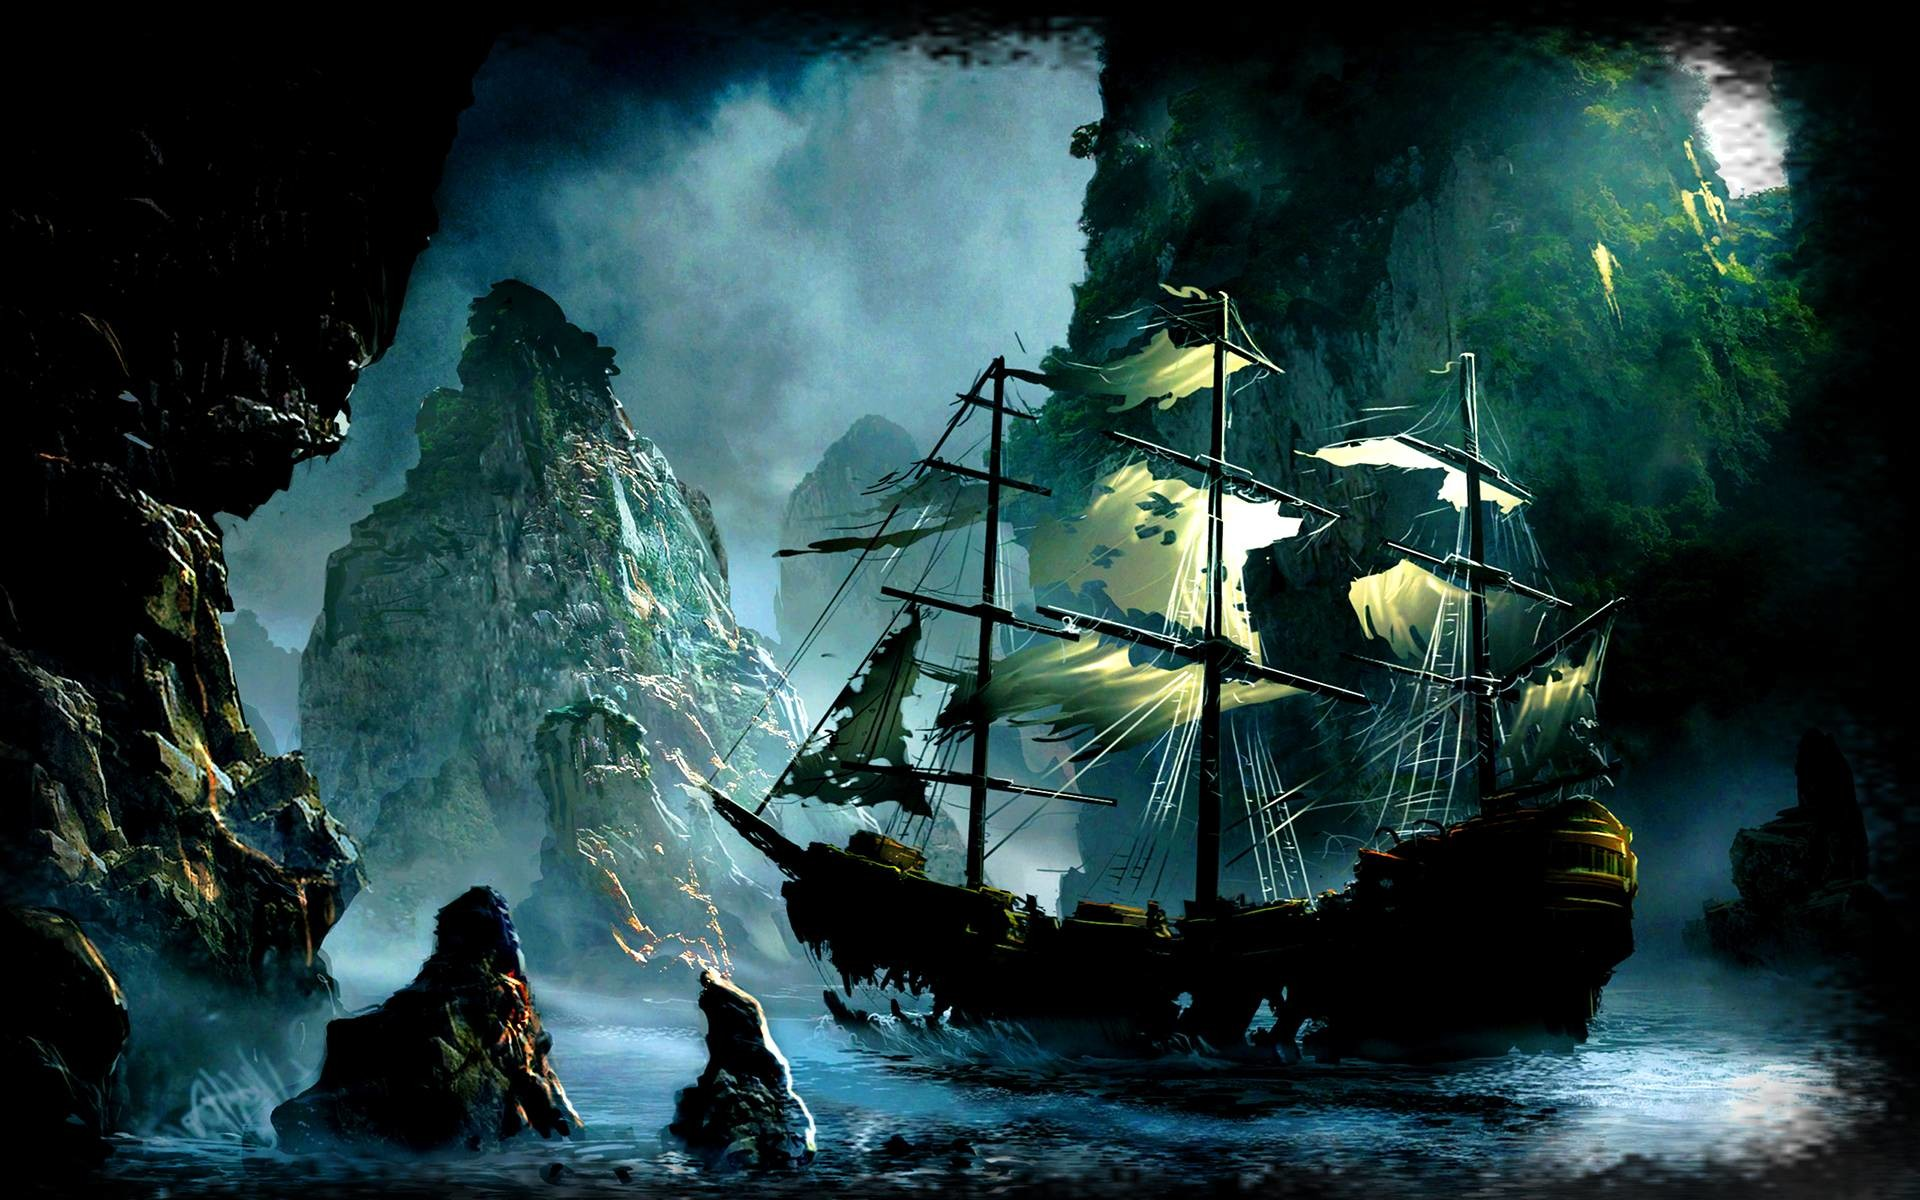 ghost pirate ship wallpaper 67 images